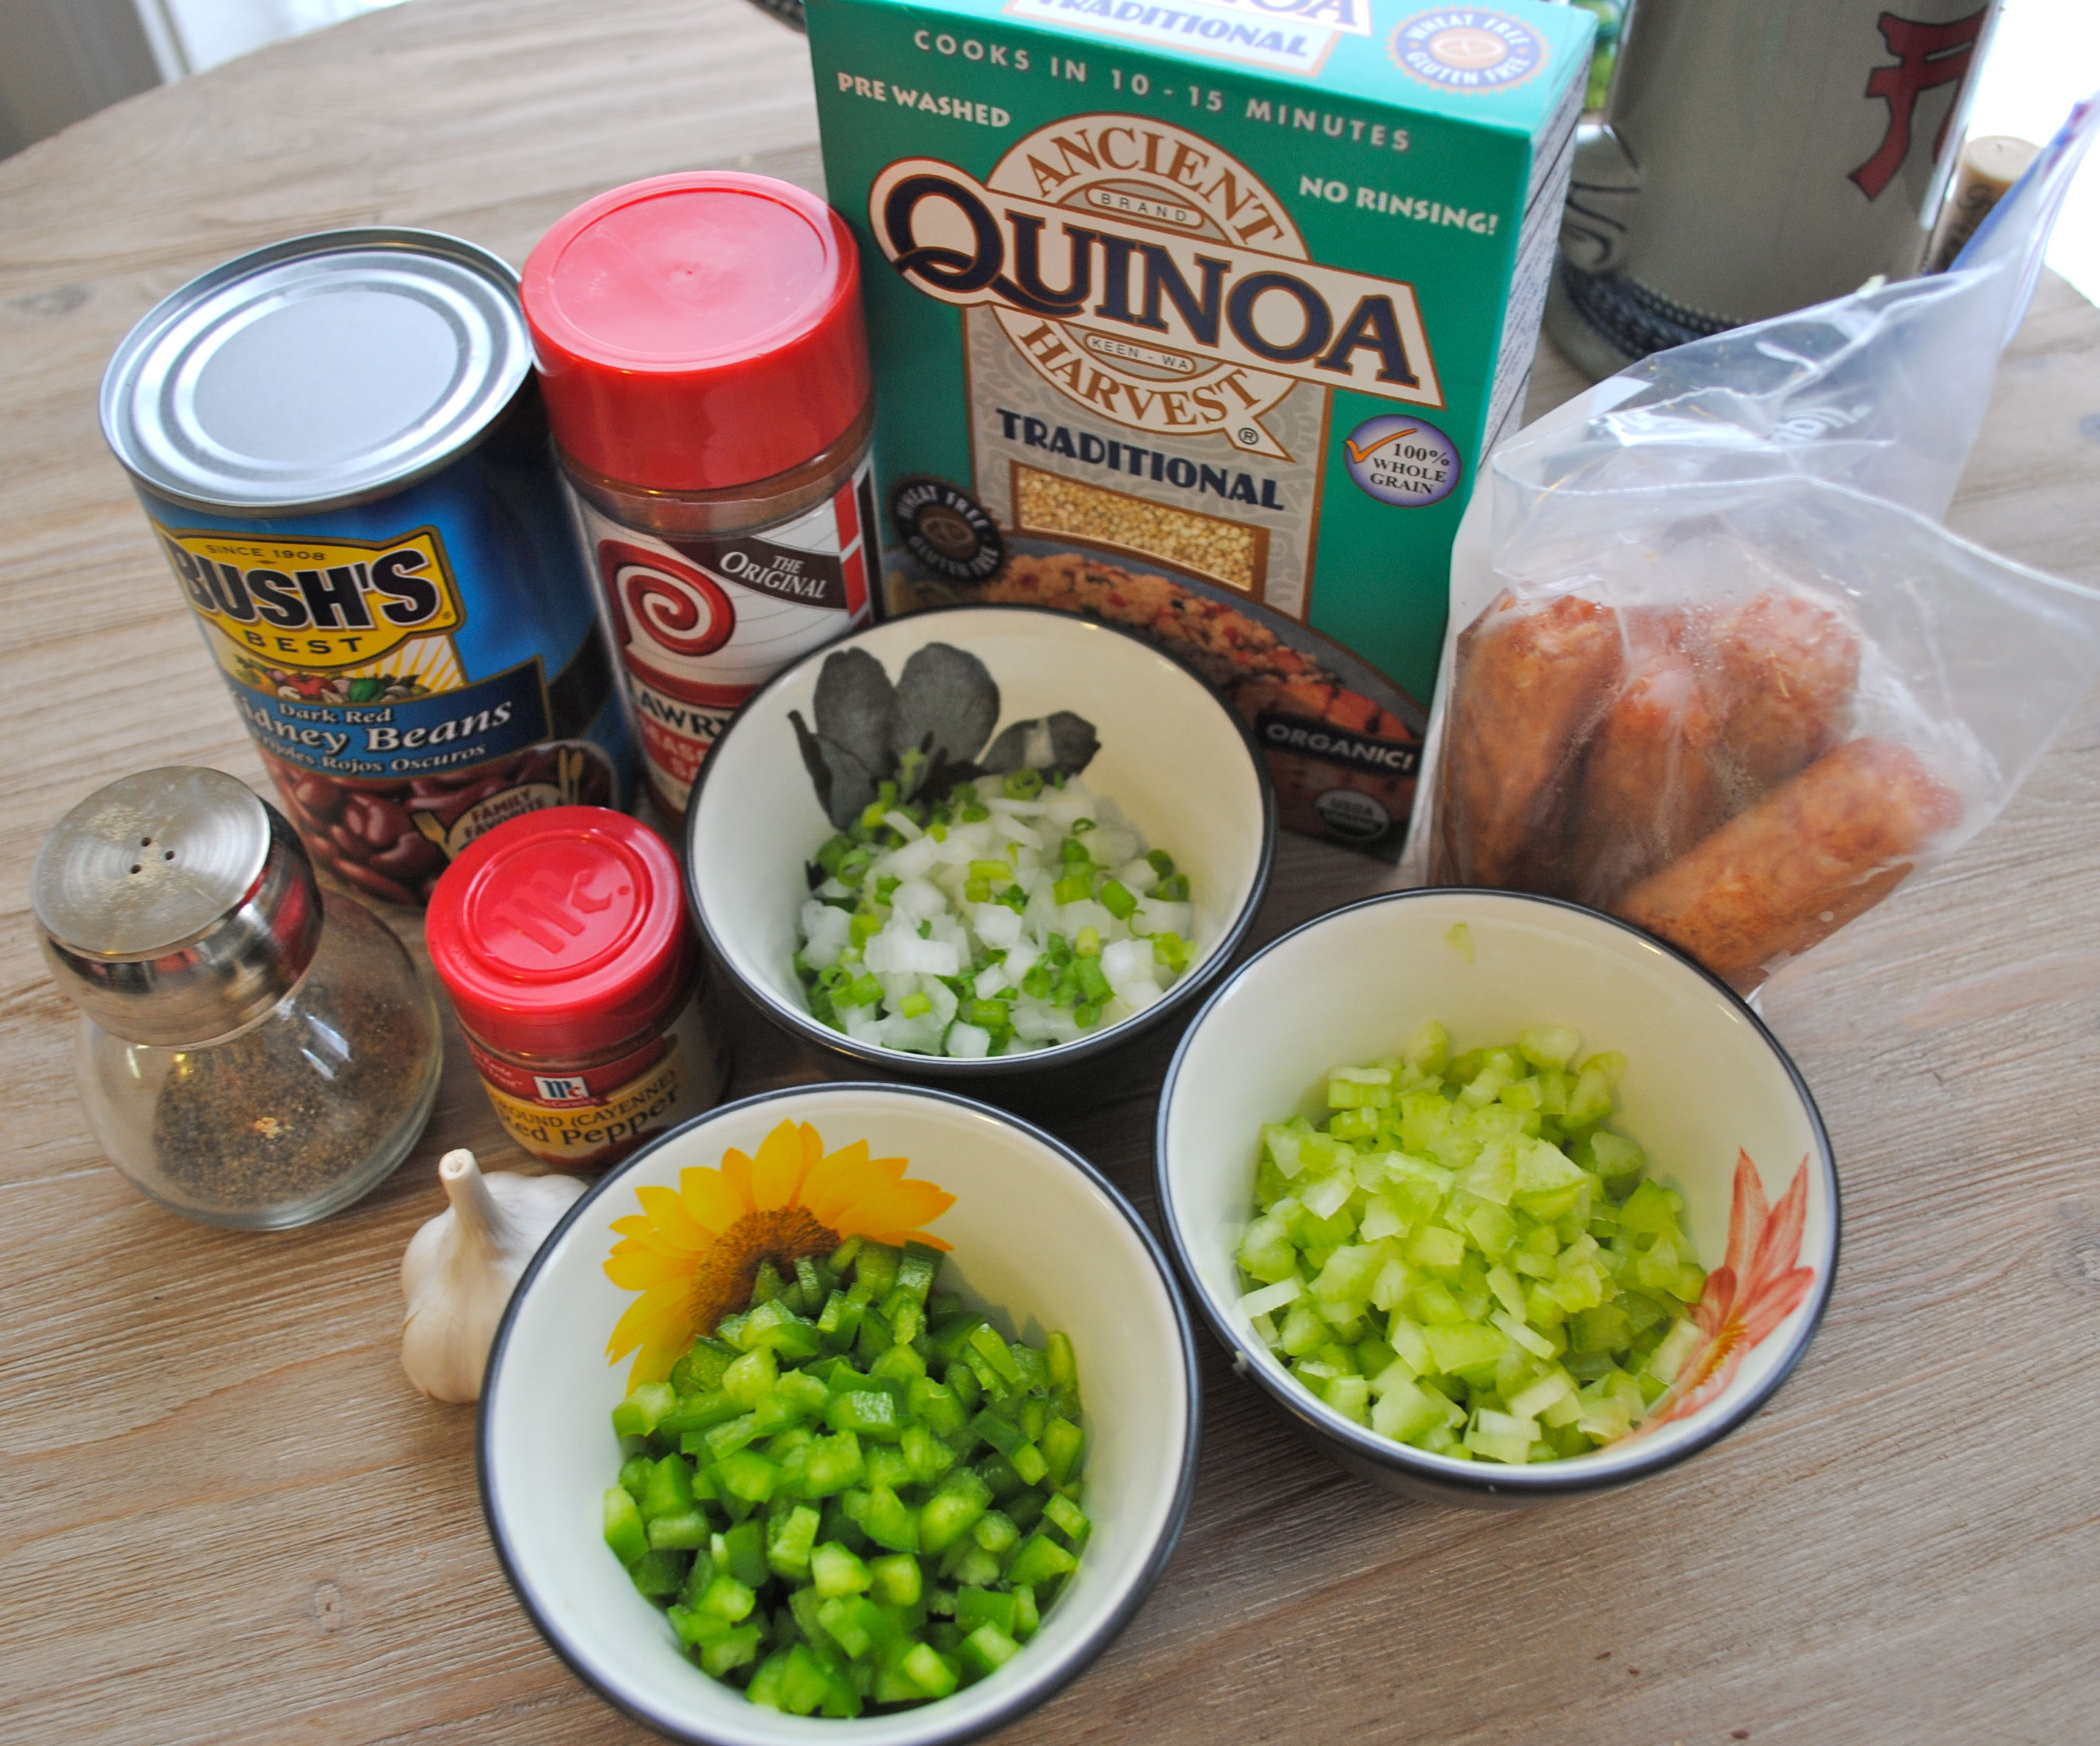 Quinoa red beans and rice ingredients